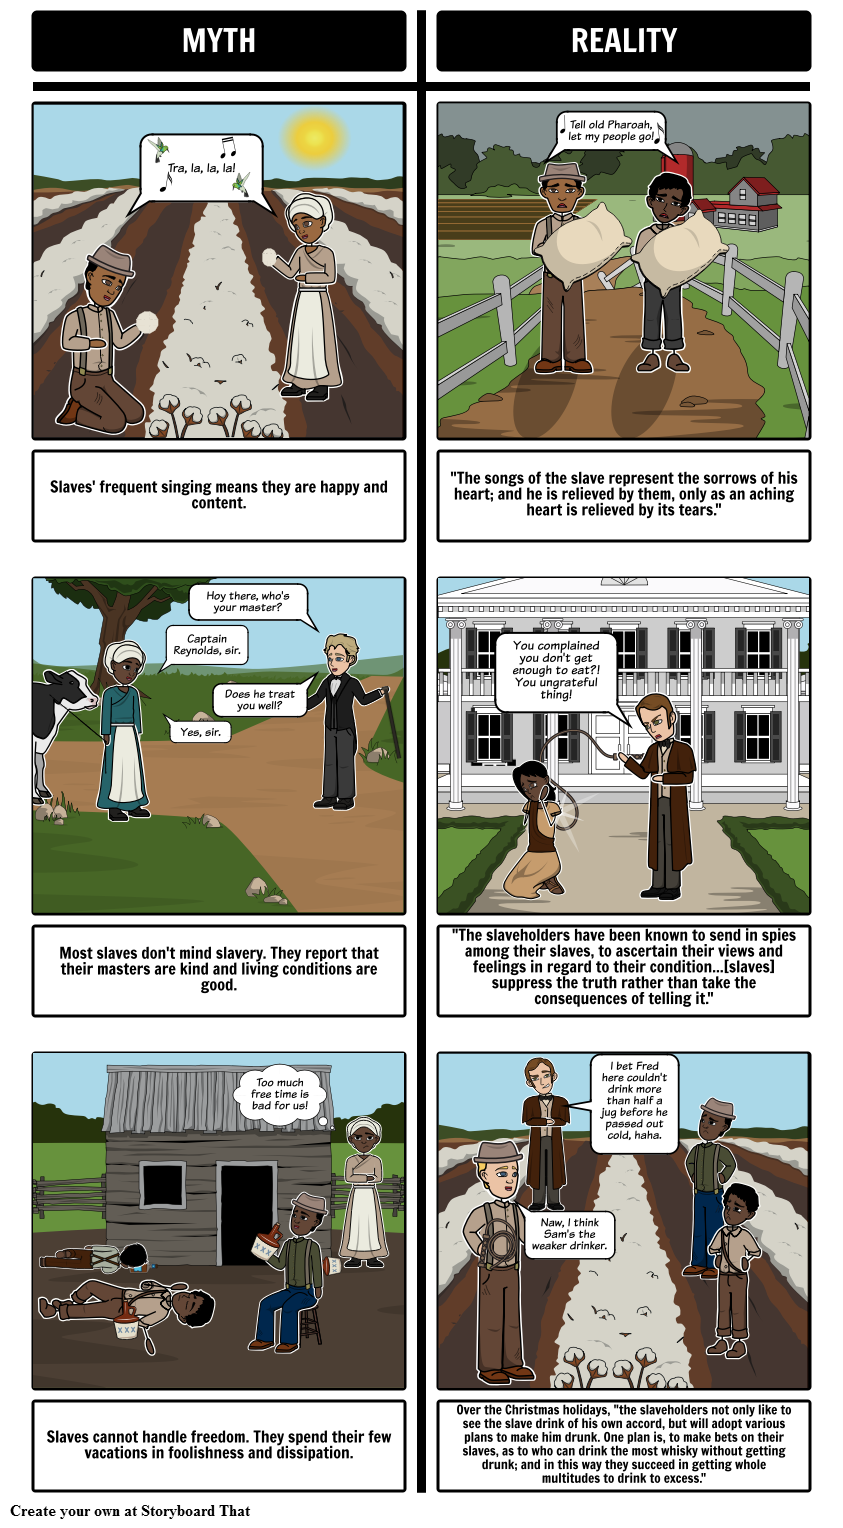 narrative life of frederick douglass essay Narrative of the life of frederick douglass essay - quality and affordable report to ease your studying benefit from our affordable custom term paper writing service and benefit from great quality get a 100% original, non-plagiarized thesis you could only think about in our paper writing assistance.